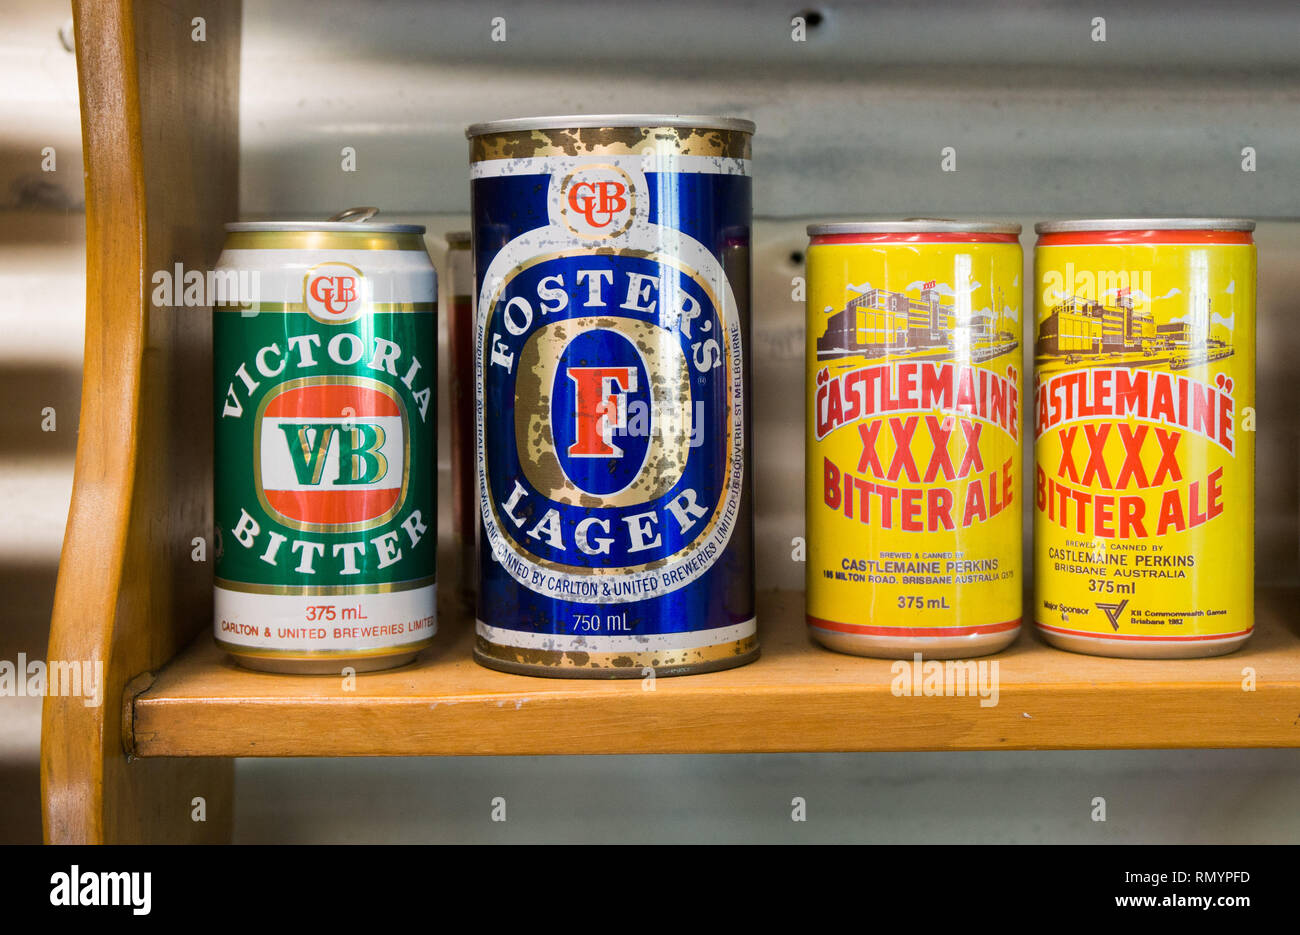 Xxxx Stock Photos & Xxxx Stock Images - Alamy